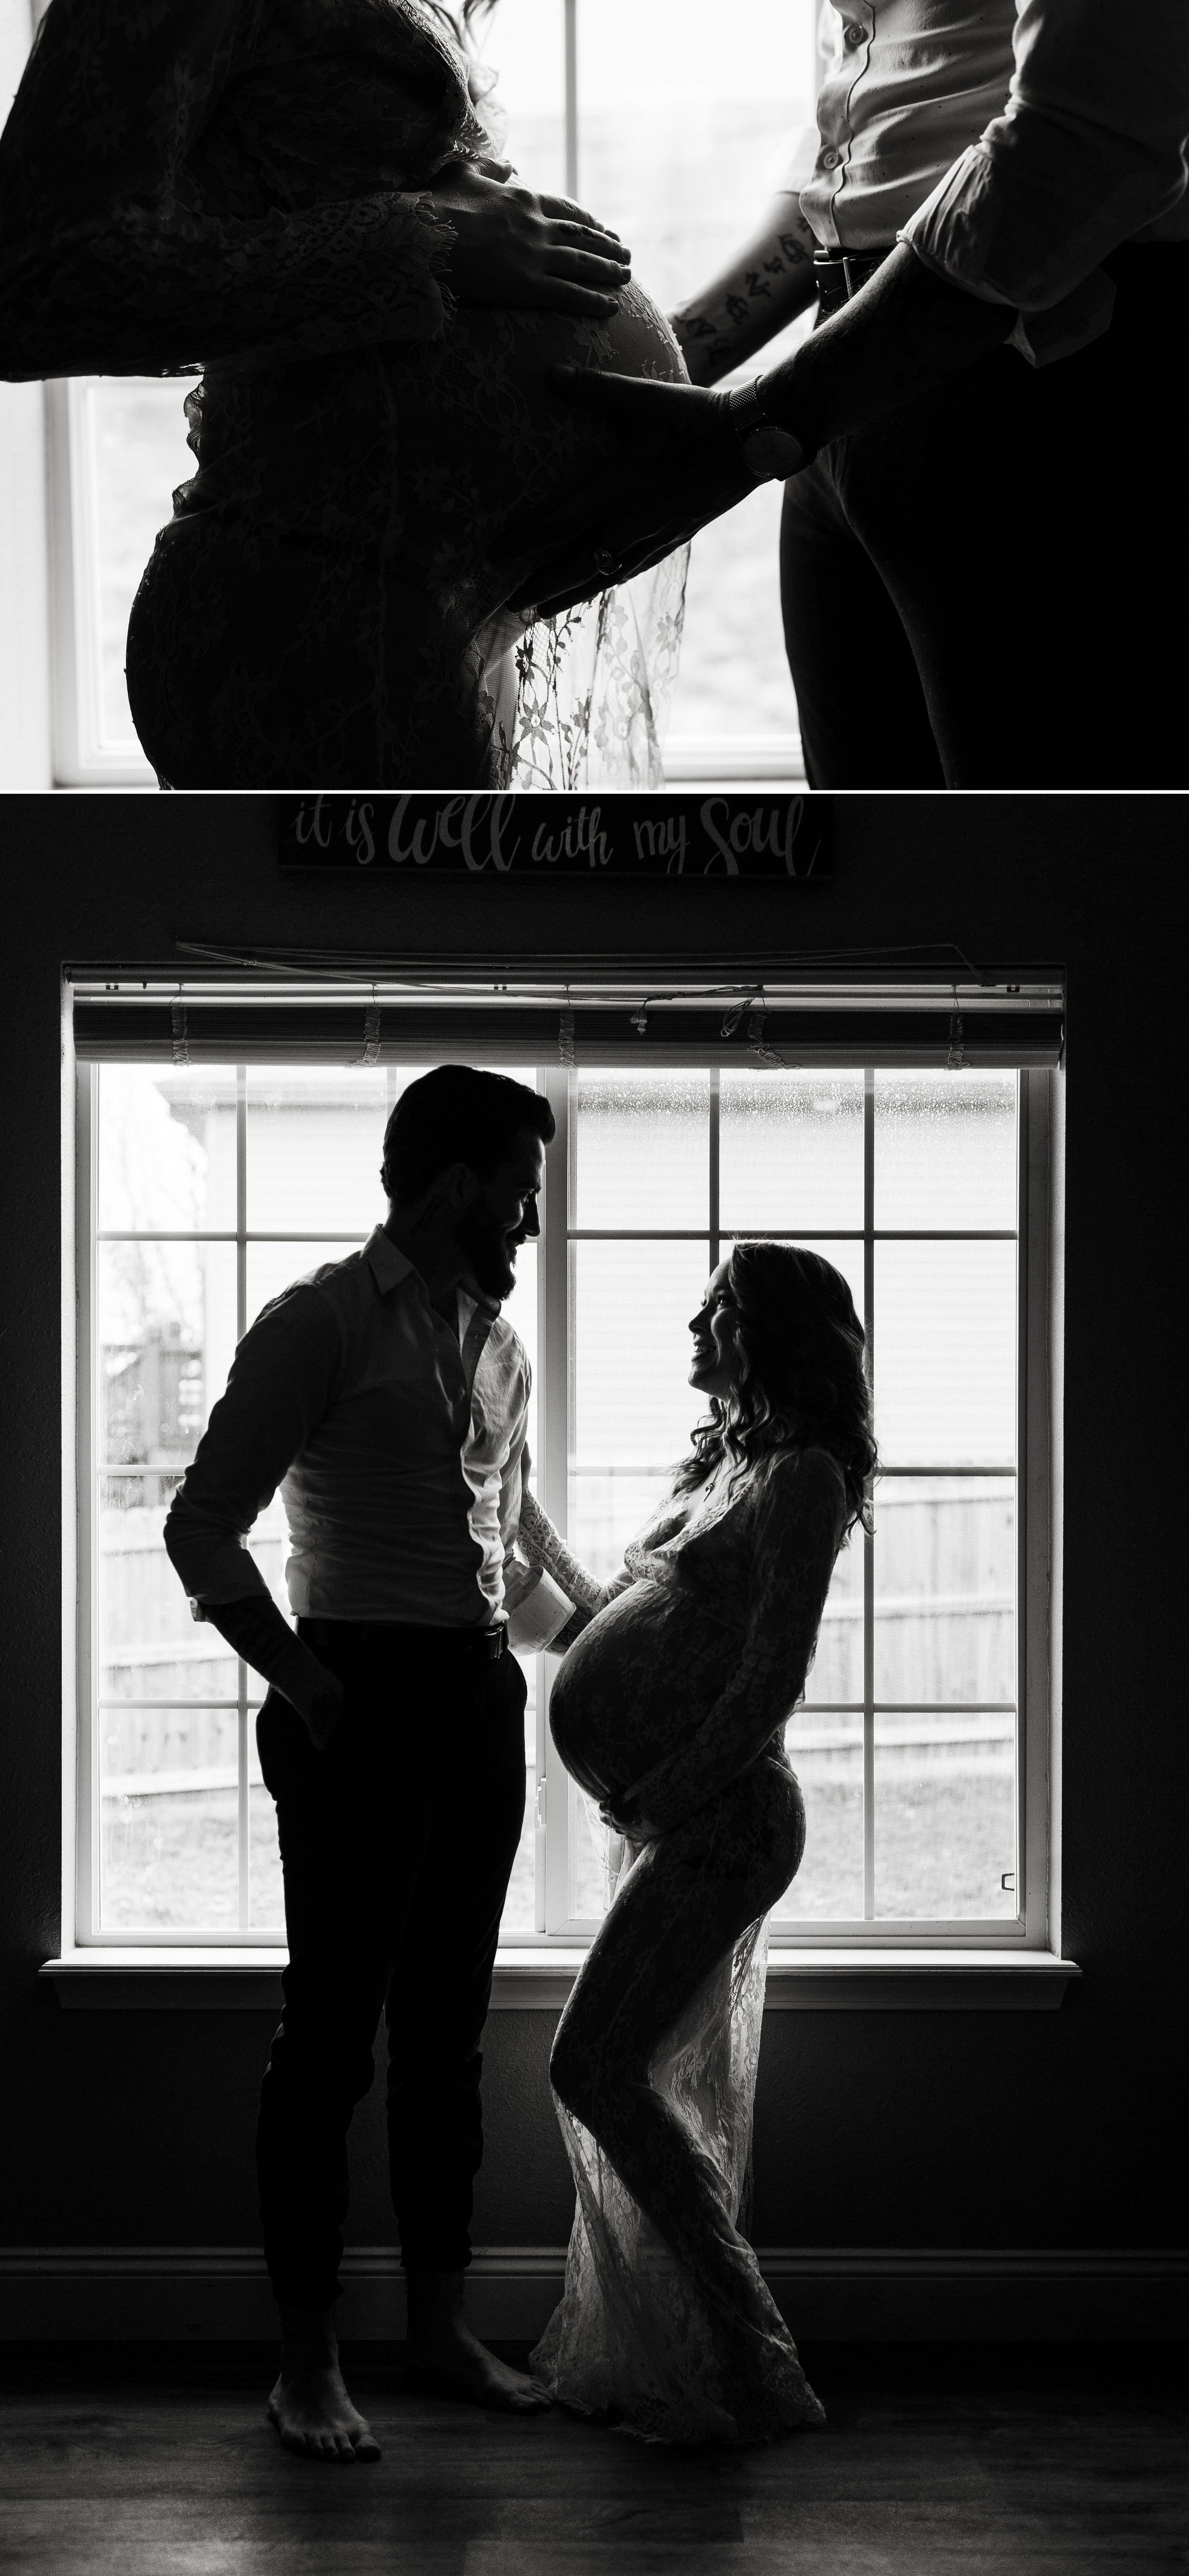 stlouis_maternity_couples_poses_photo_ideas_photography_travel_kansas_city_springfield_fortleonardwood_family_senior_d 11.jpg